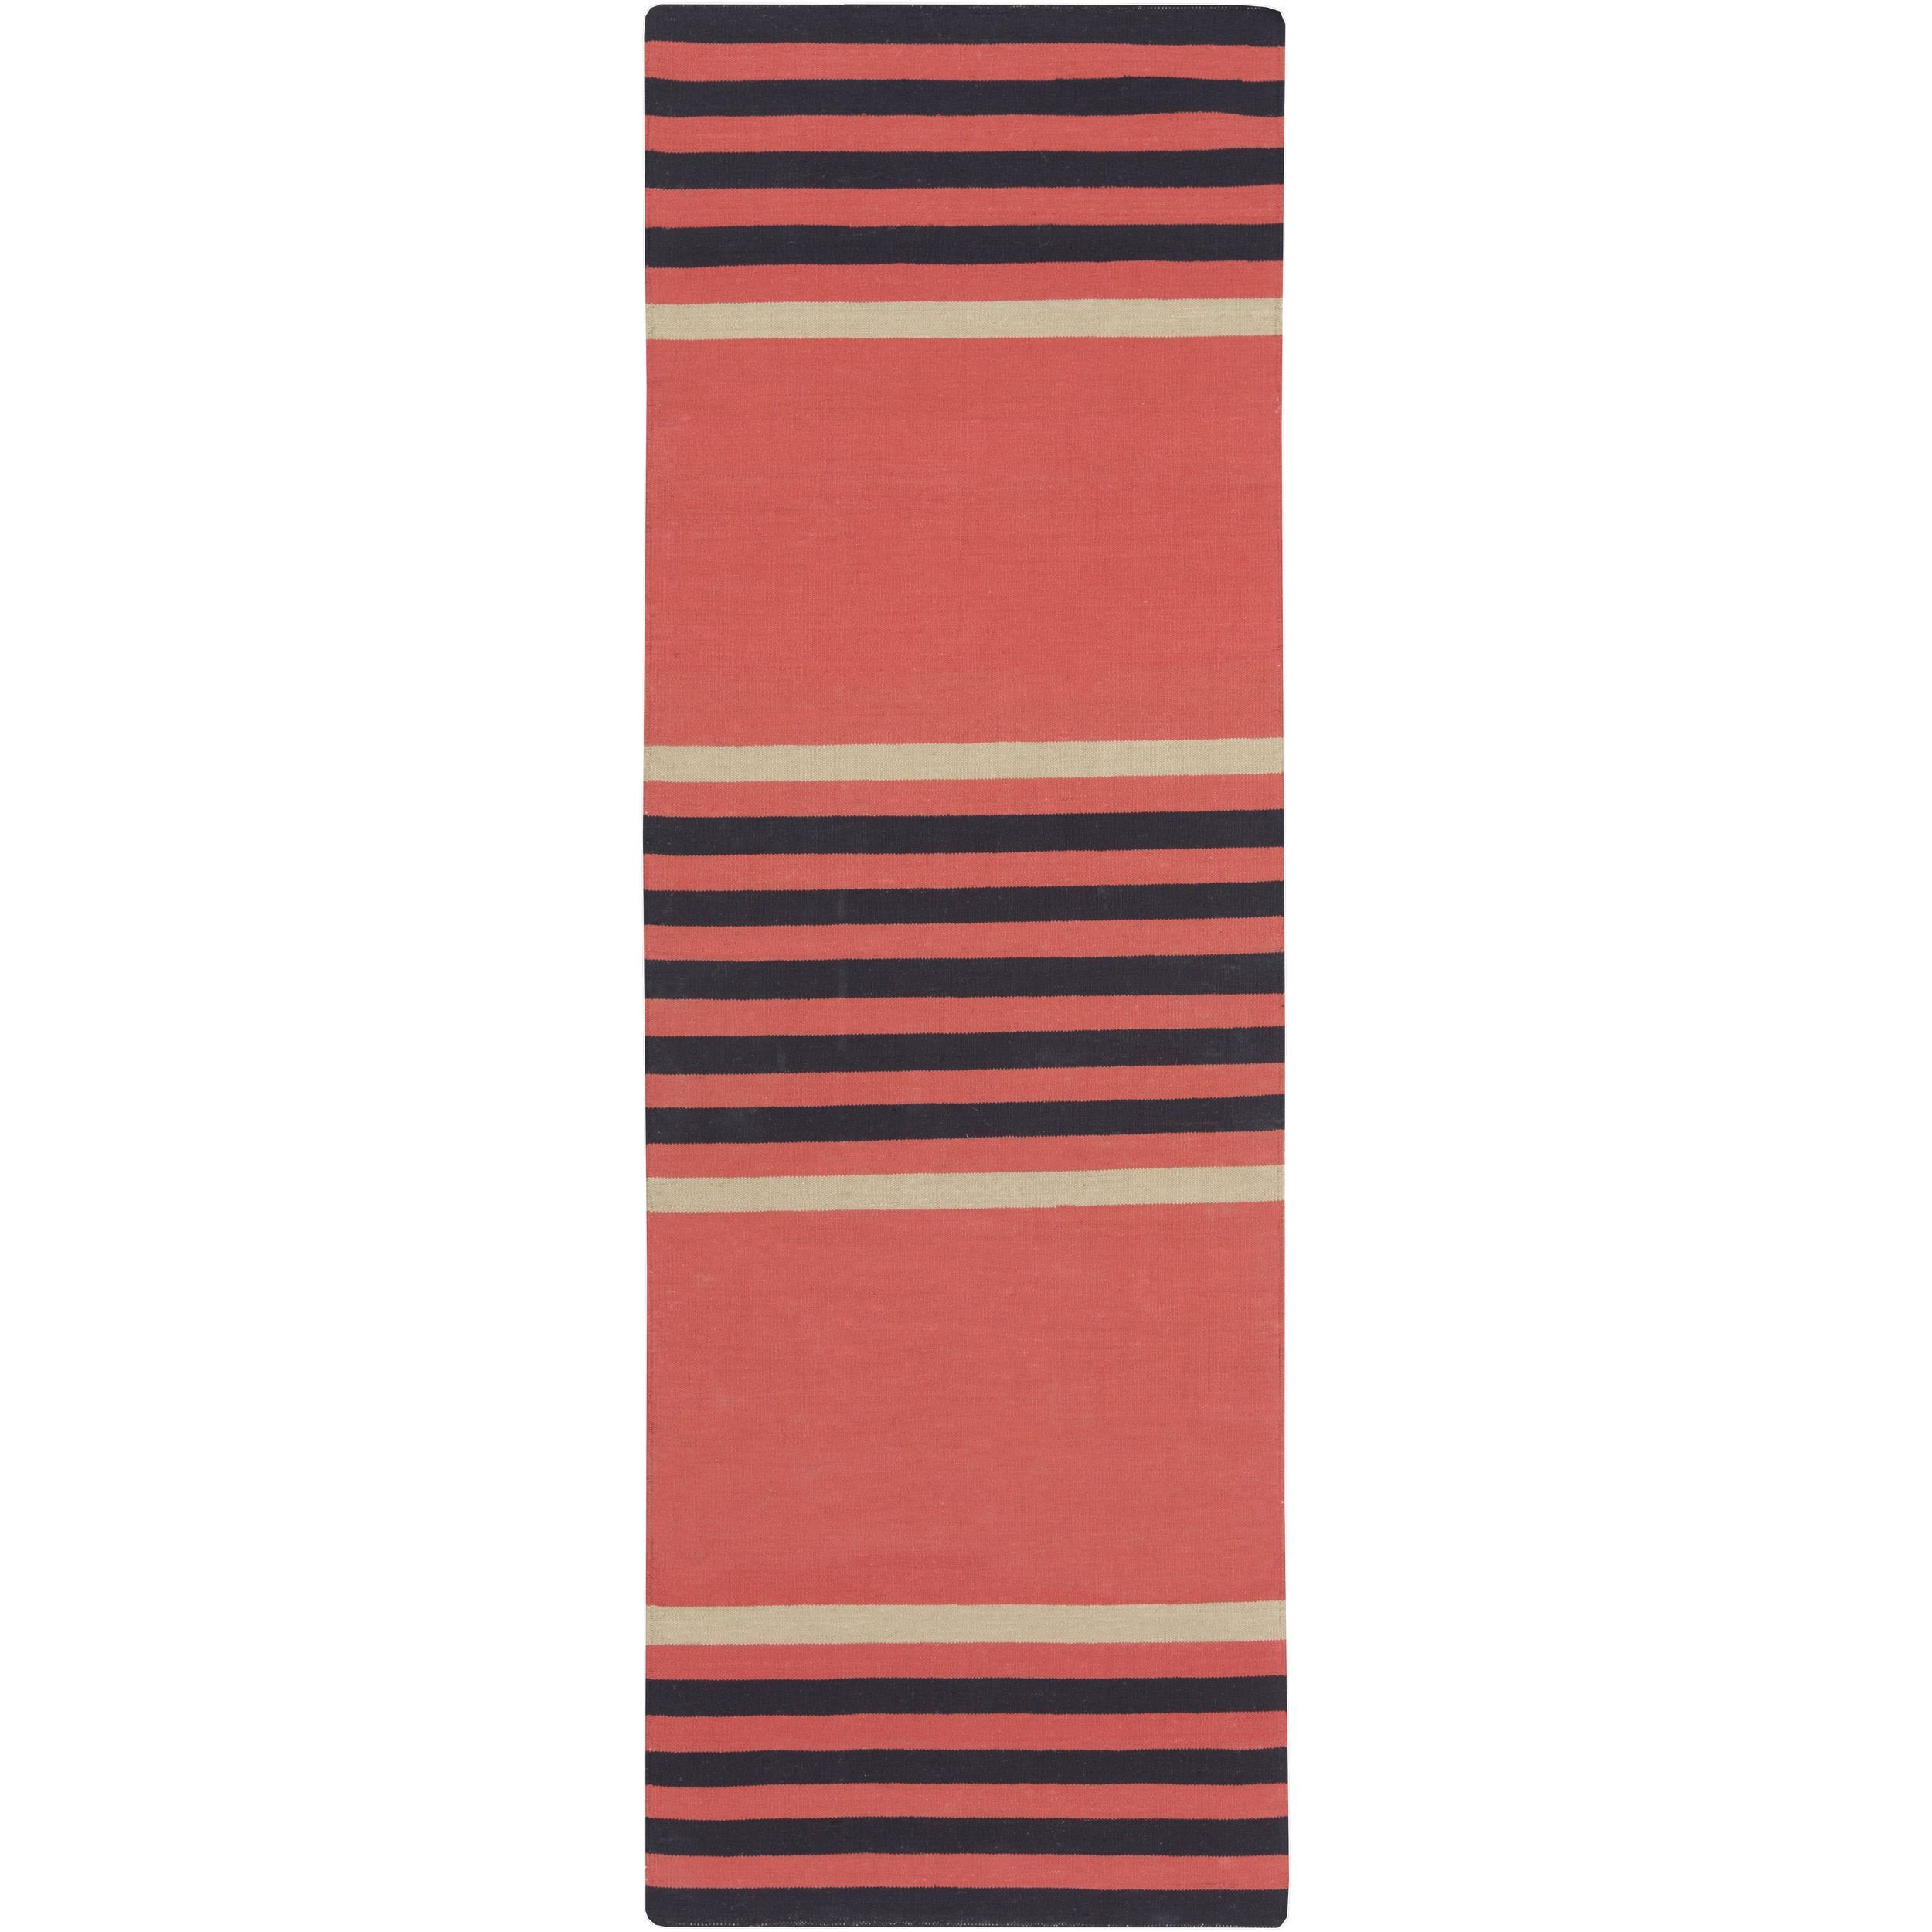 Hand-Woven Patrick Pattern Rug